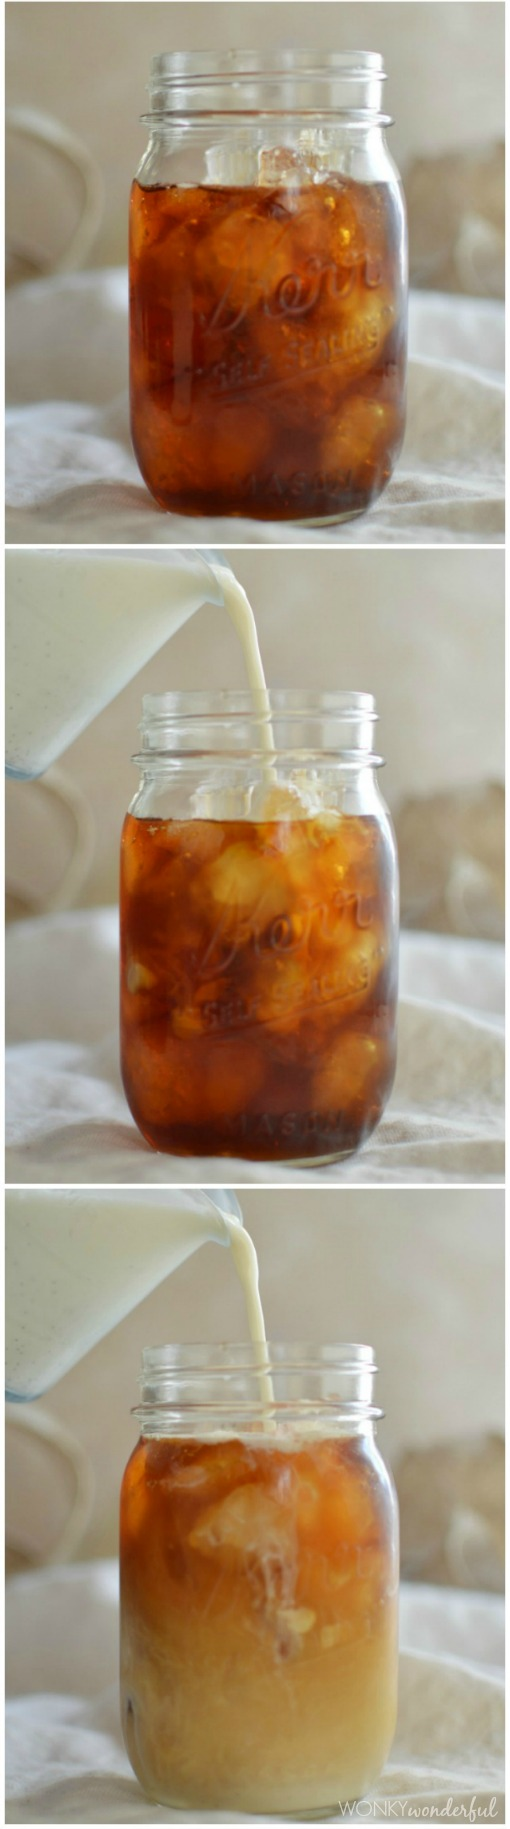 three photos showing plain iced coffee in clear jar, creamer being poured in and then a creamy iced coffee